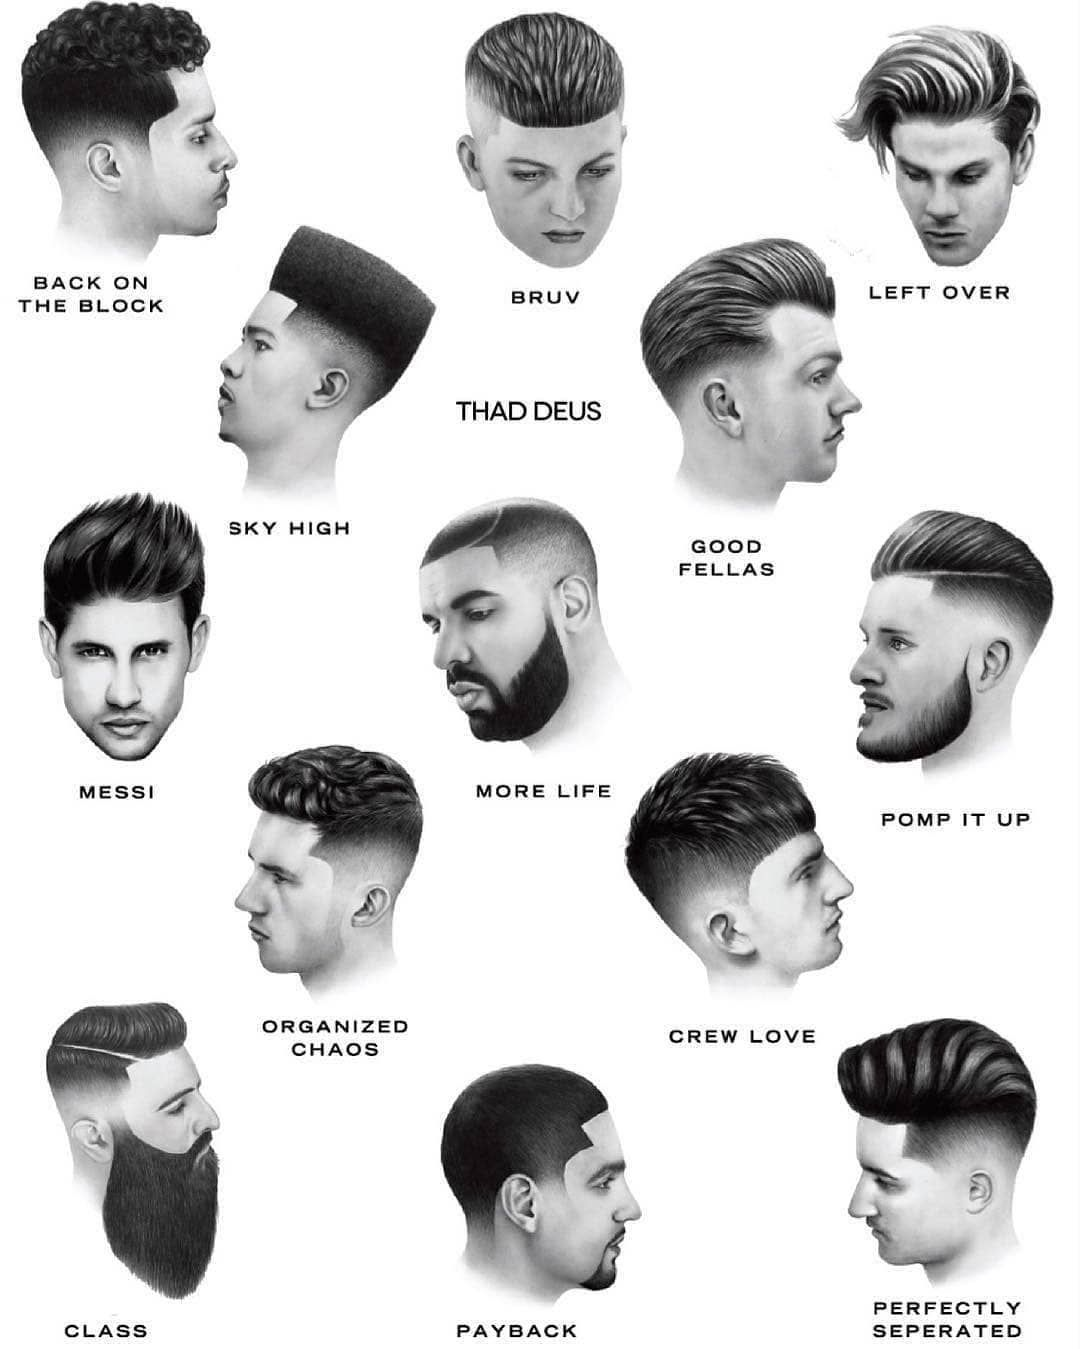 Comment Your Favourite Hairstyle Credit Thad Deus Menshairworld The Amsterdam Barber Bar Gents Hair Style Mens Hairstyles Hair And Beard Styles